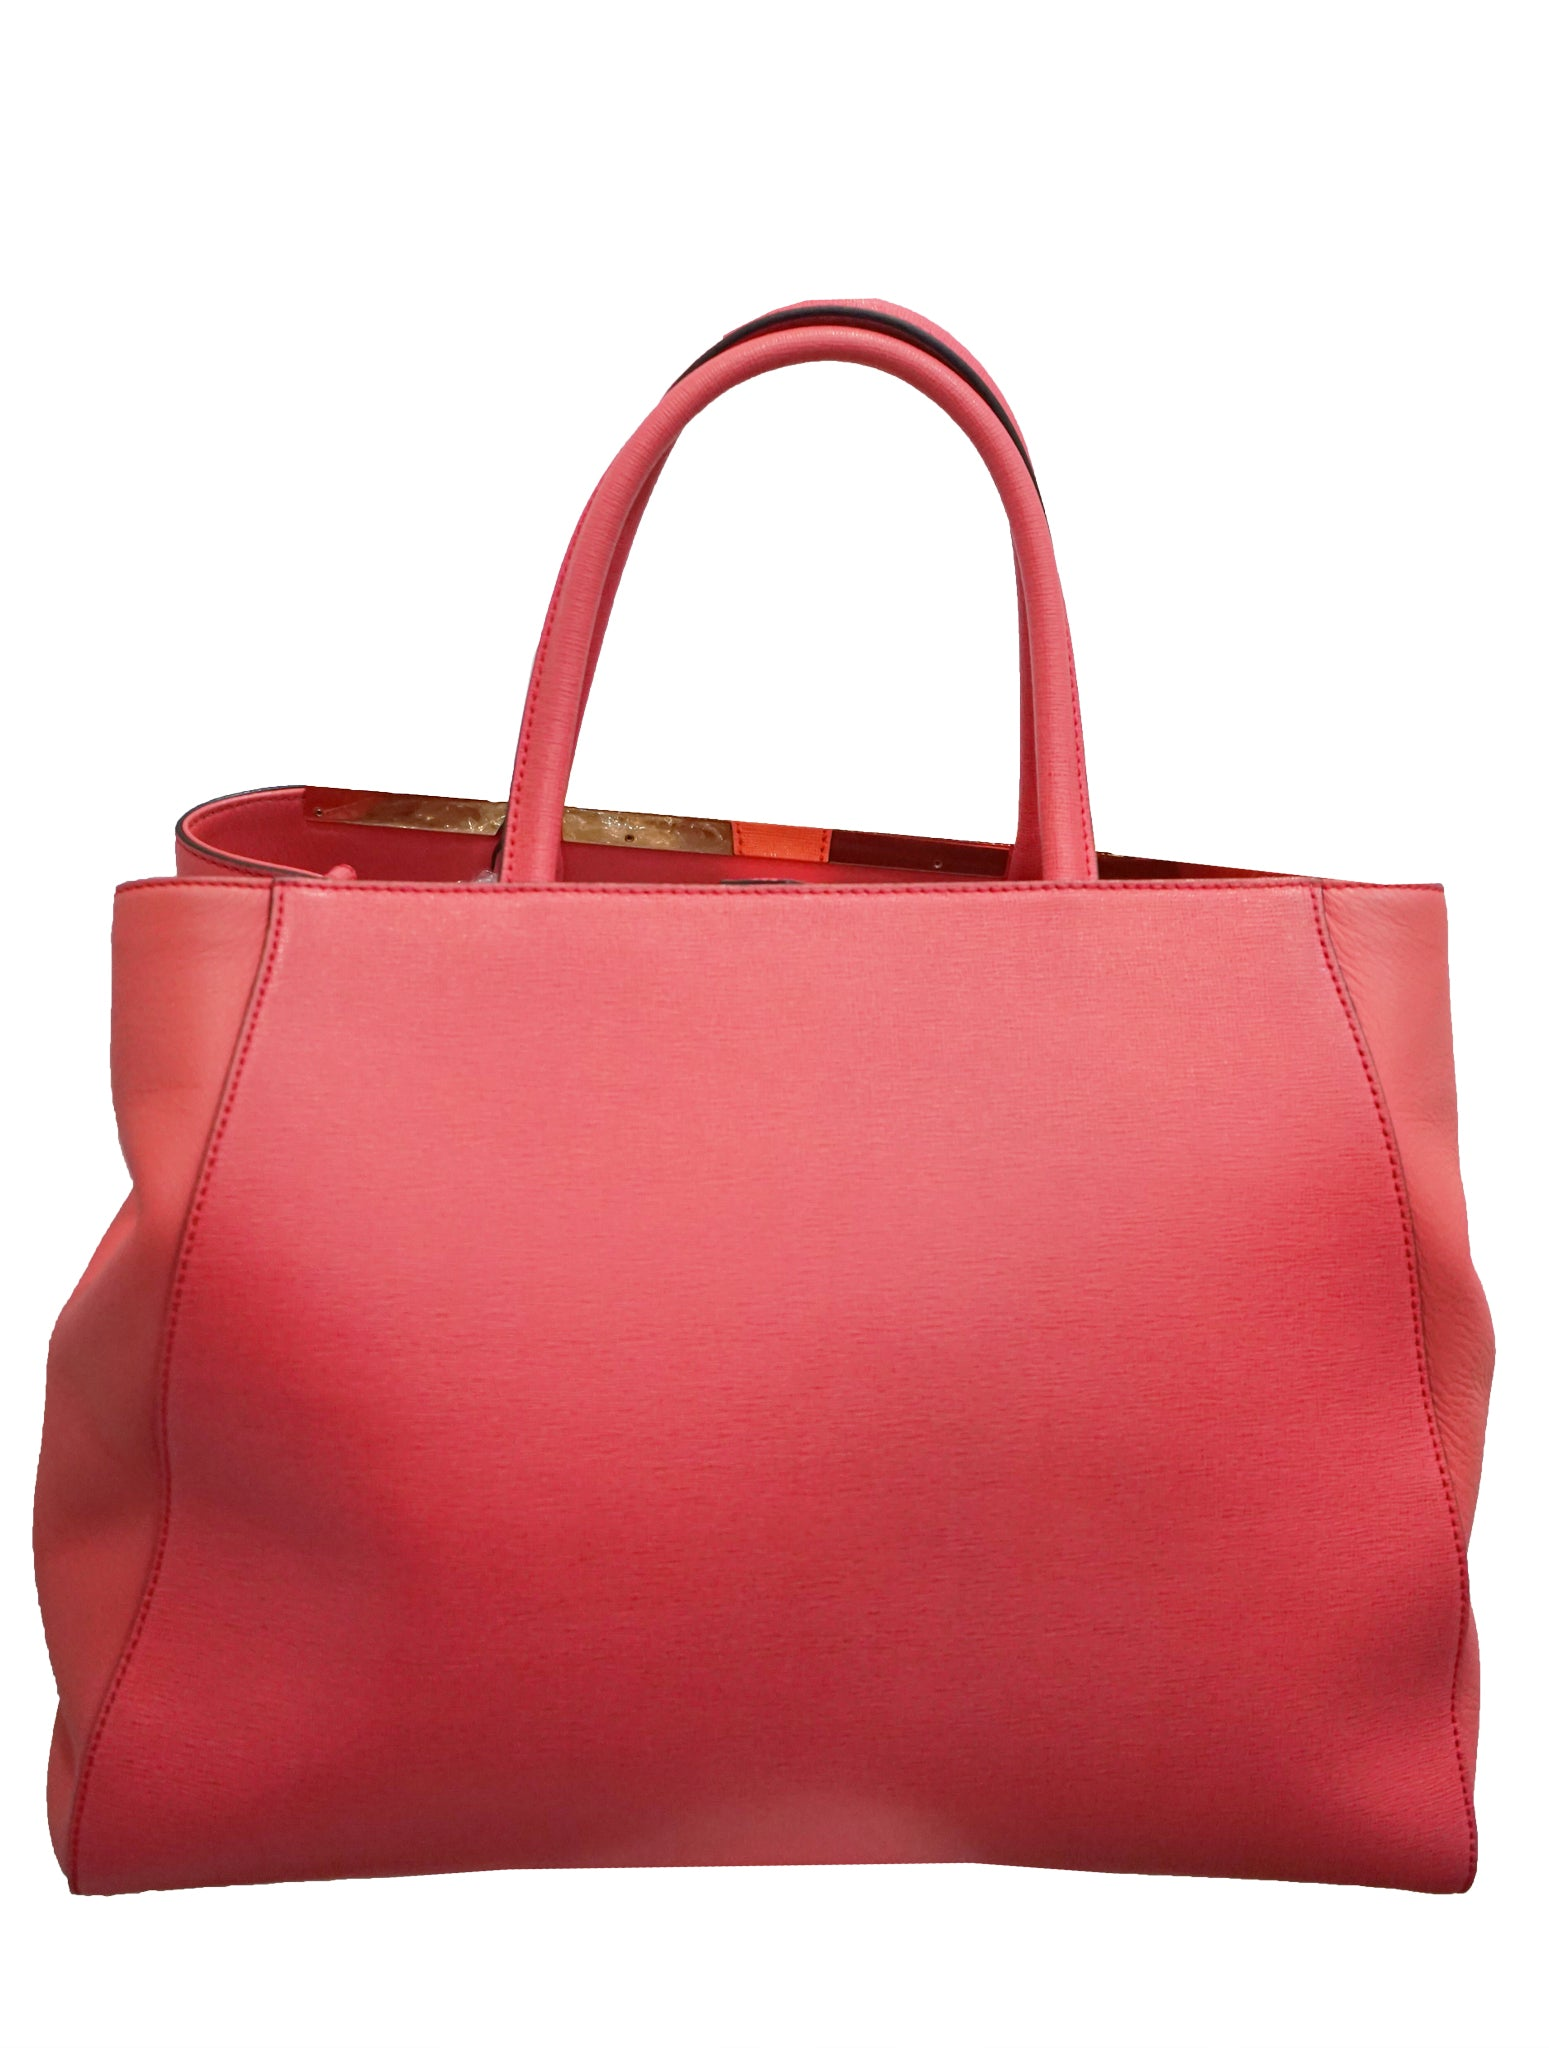 SAFFIANO LEATHER 2JOURS TOTE